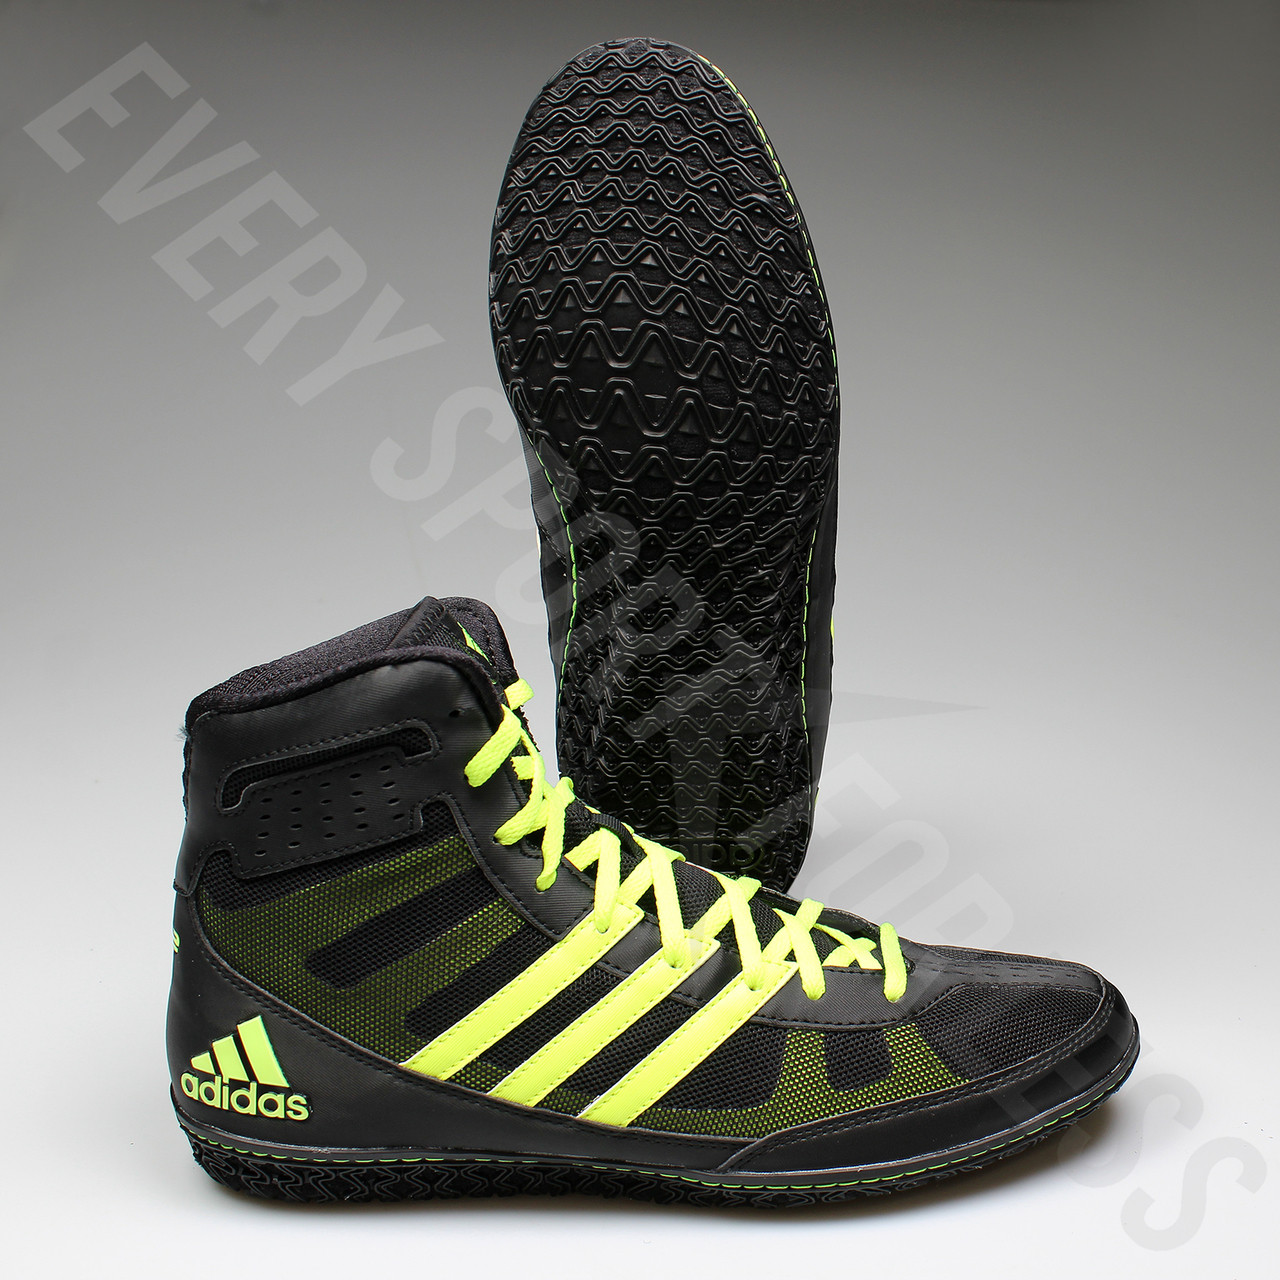 c47dc387b6eac0 ... Adidas Mat Wizard 3 Senior Wrestling Shoes S77969 - Black